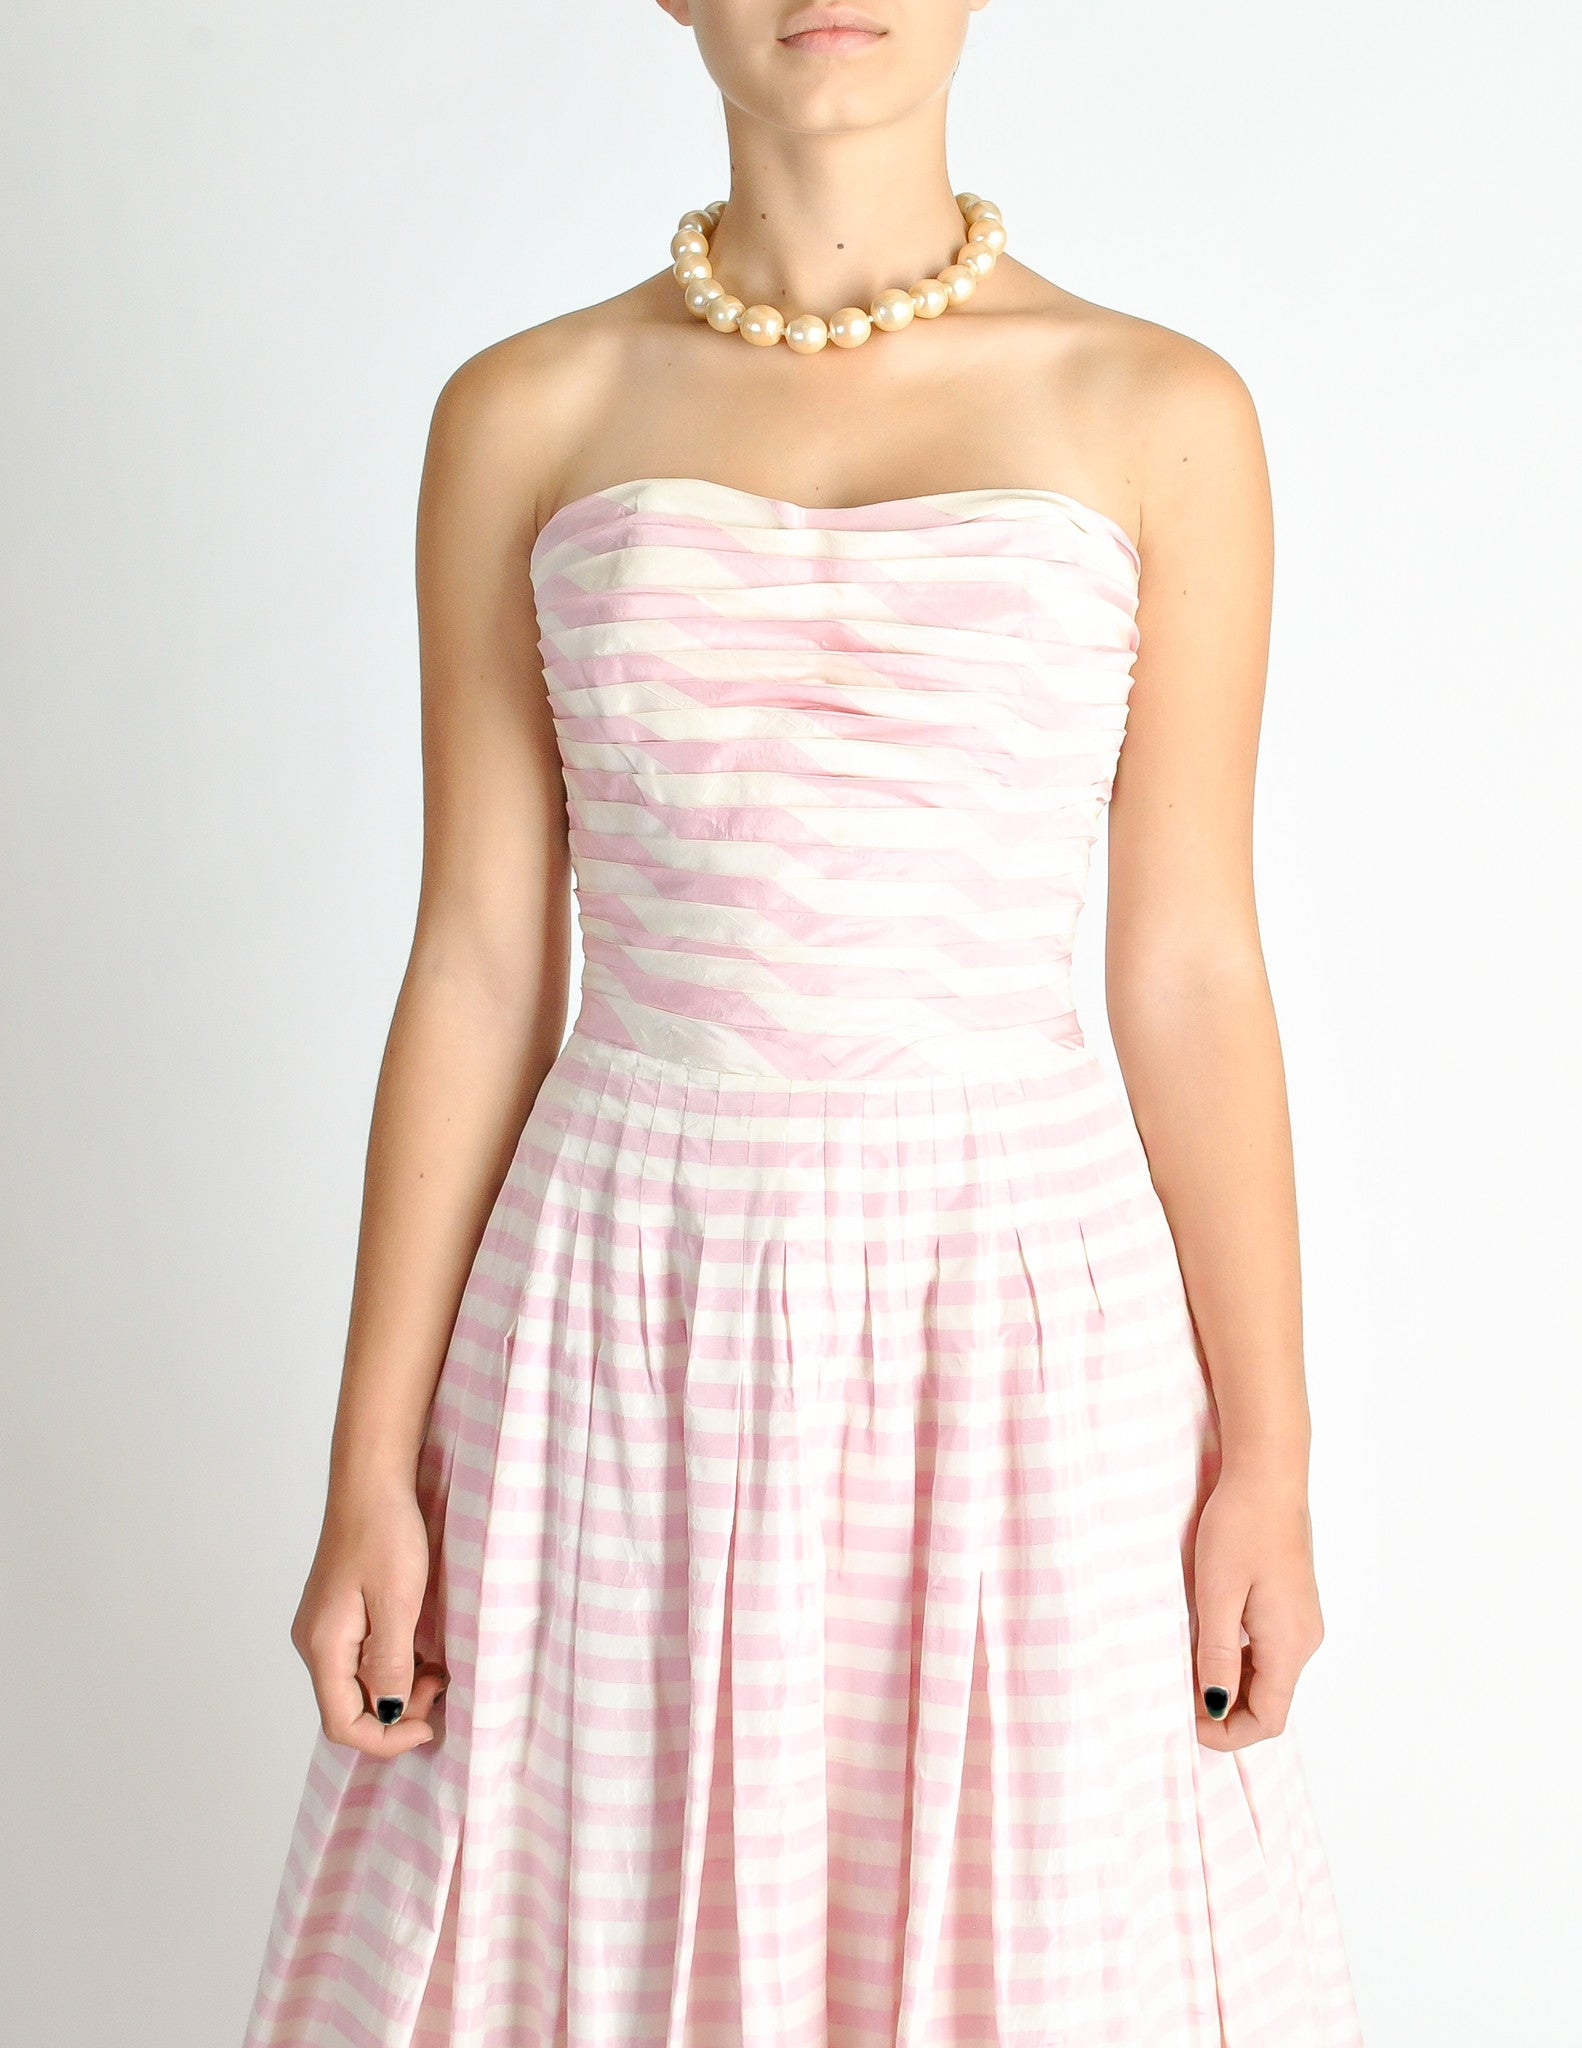 Chanel Vintage Pink Amp White Striped Raw Silk Gown Dress